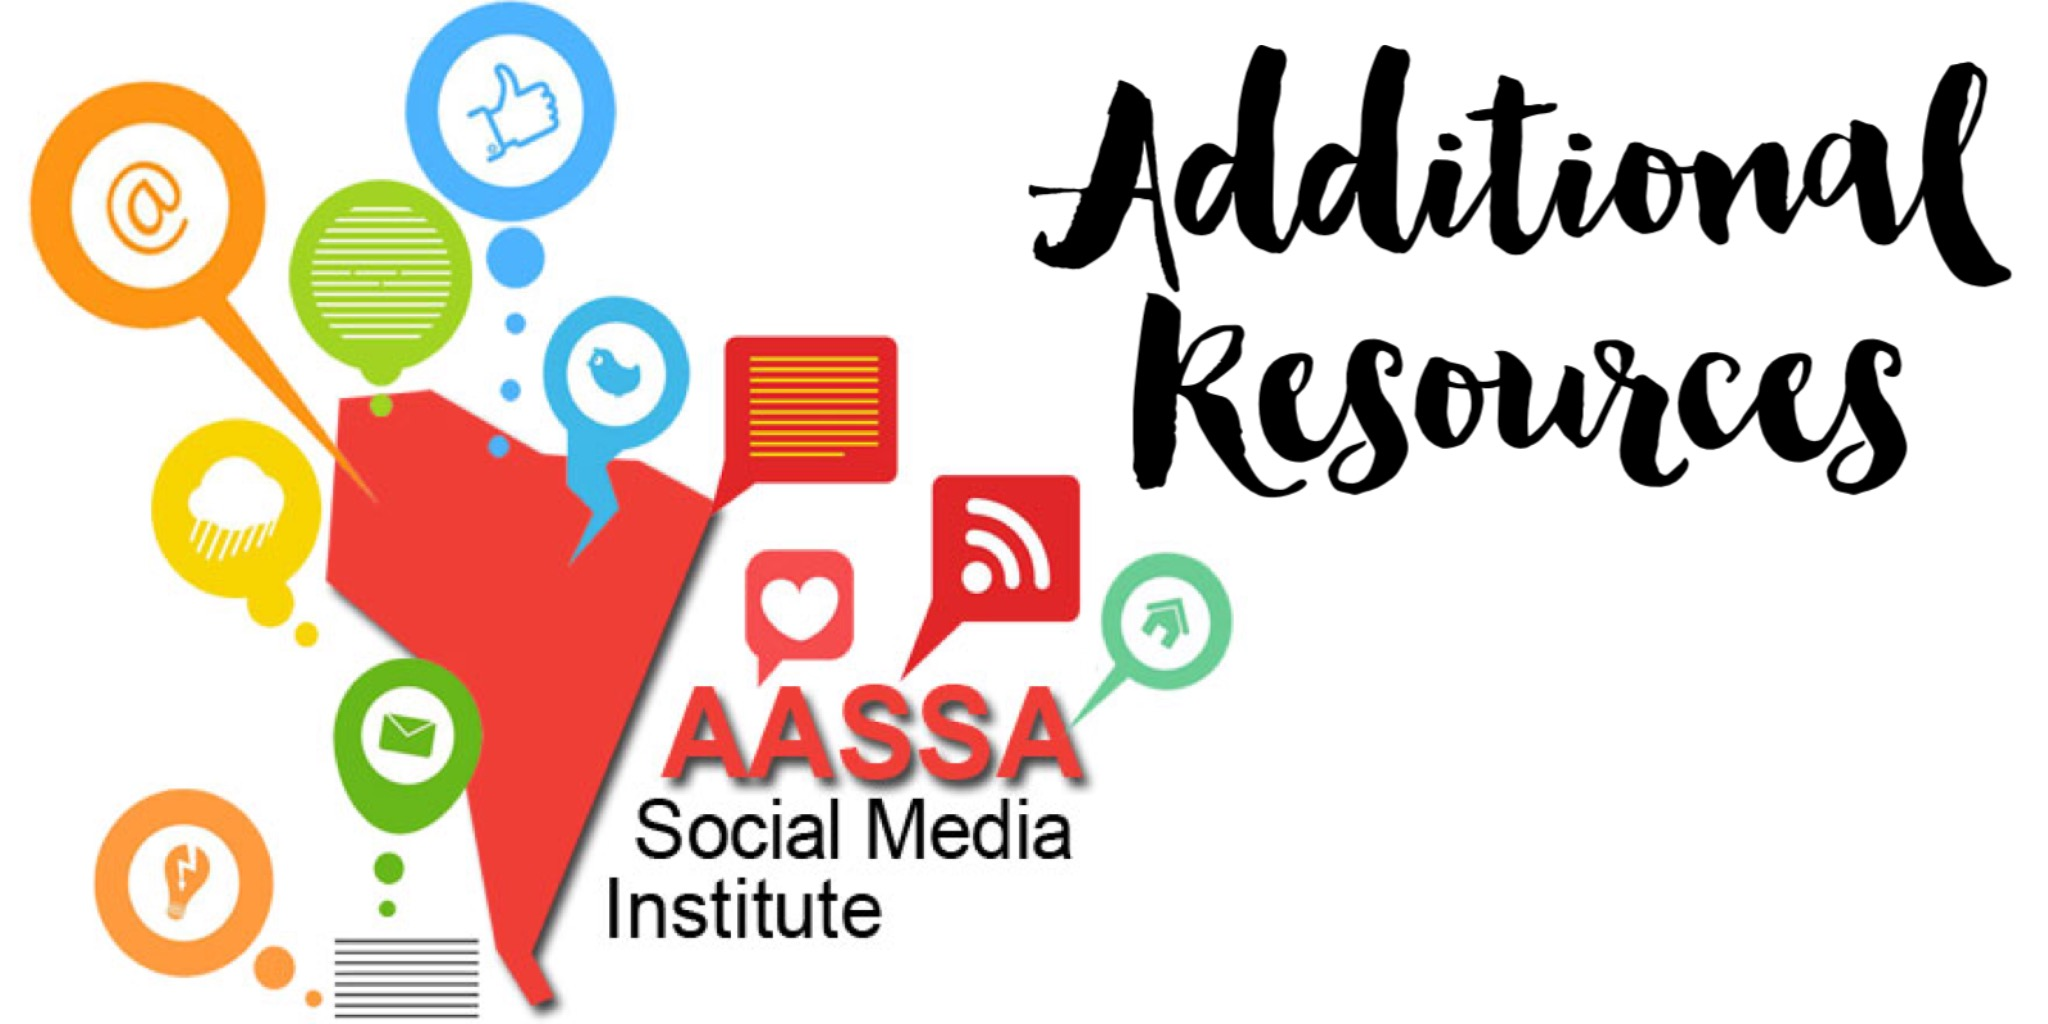 take a look at further resources below with list of questions to guide developing a policy how to create social media